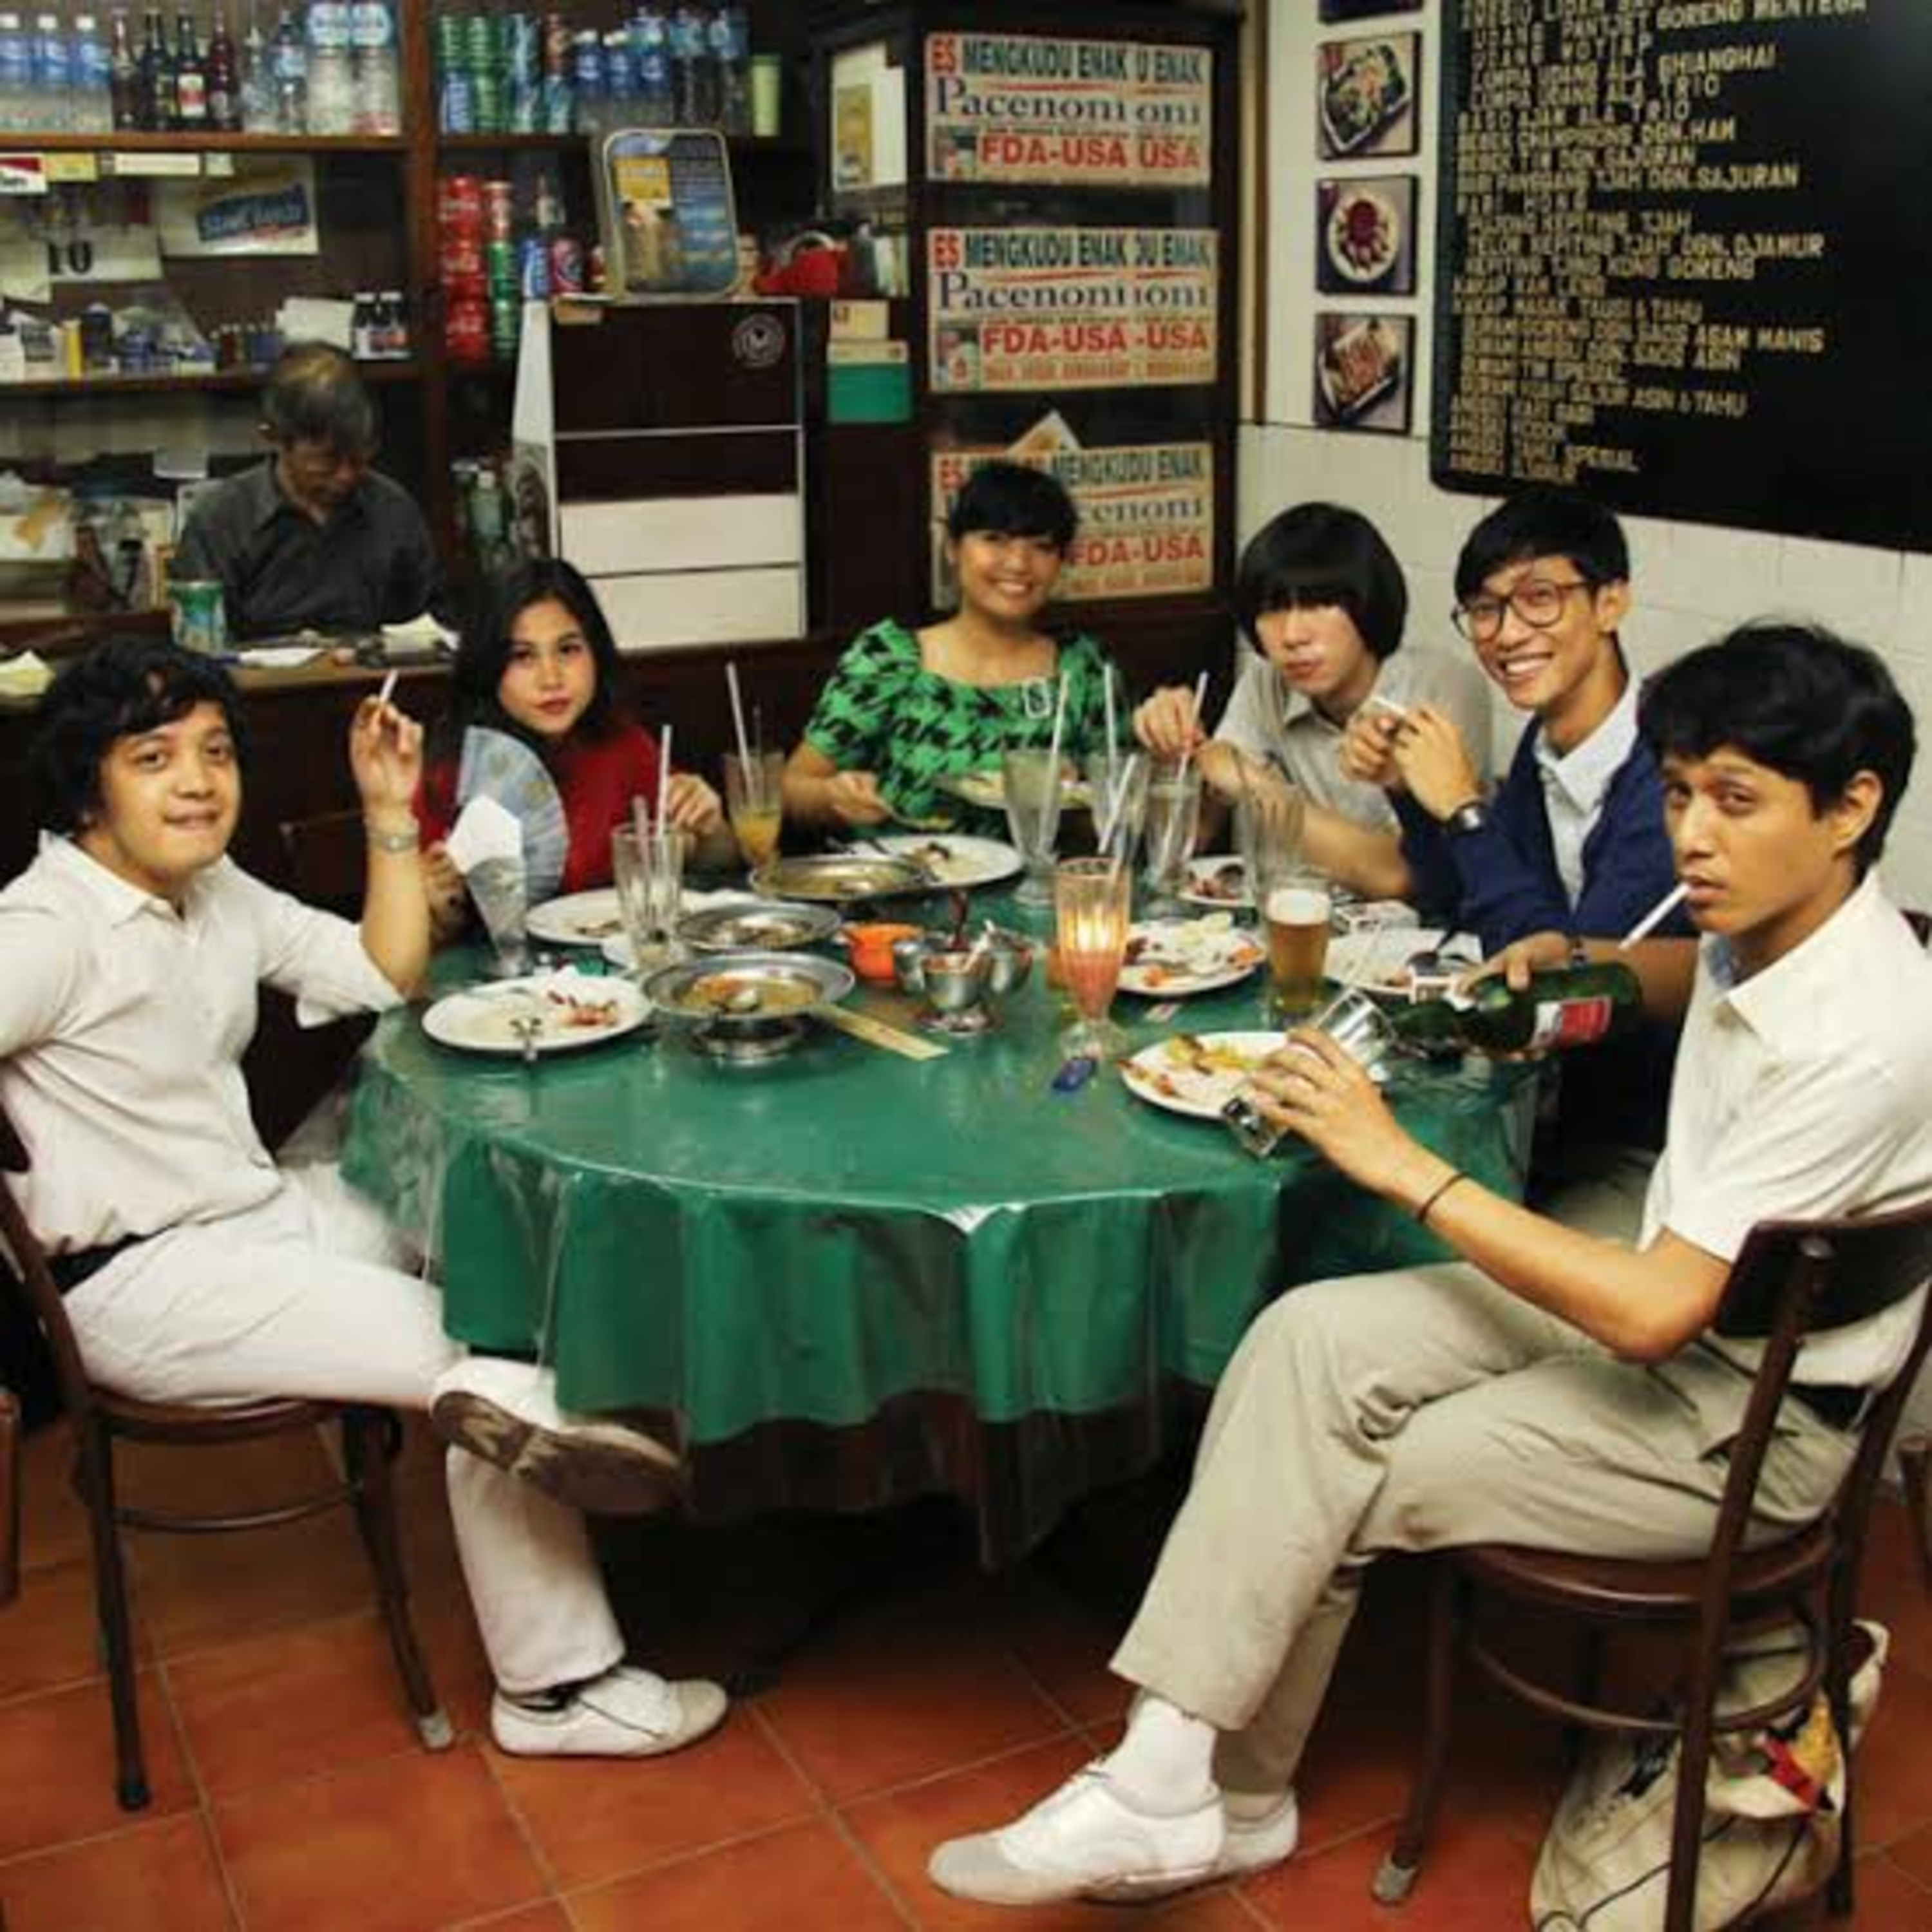 Eps 2 - Interview White Shoes & the Couples Company : Kultur Musik Southeast Asia & Gank Promotor Musik